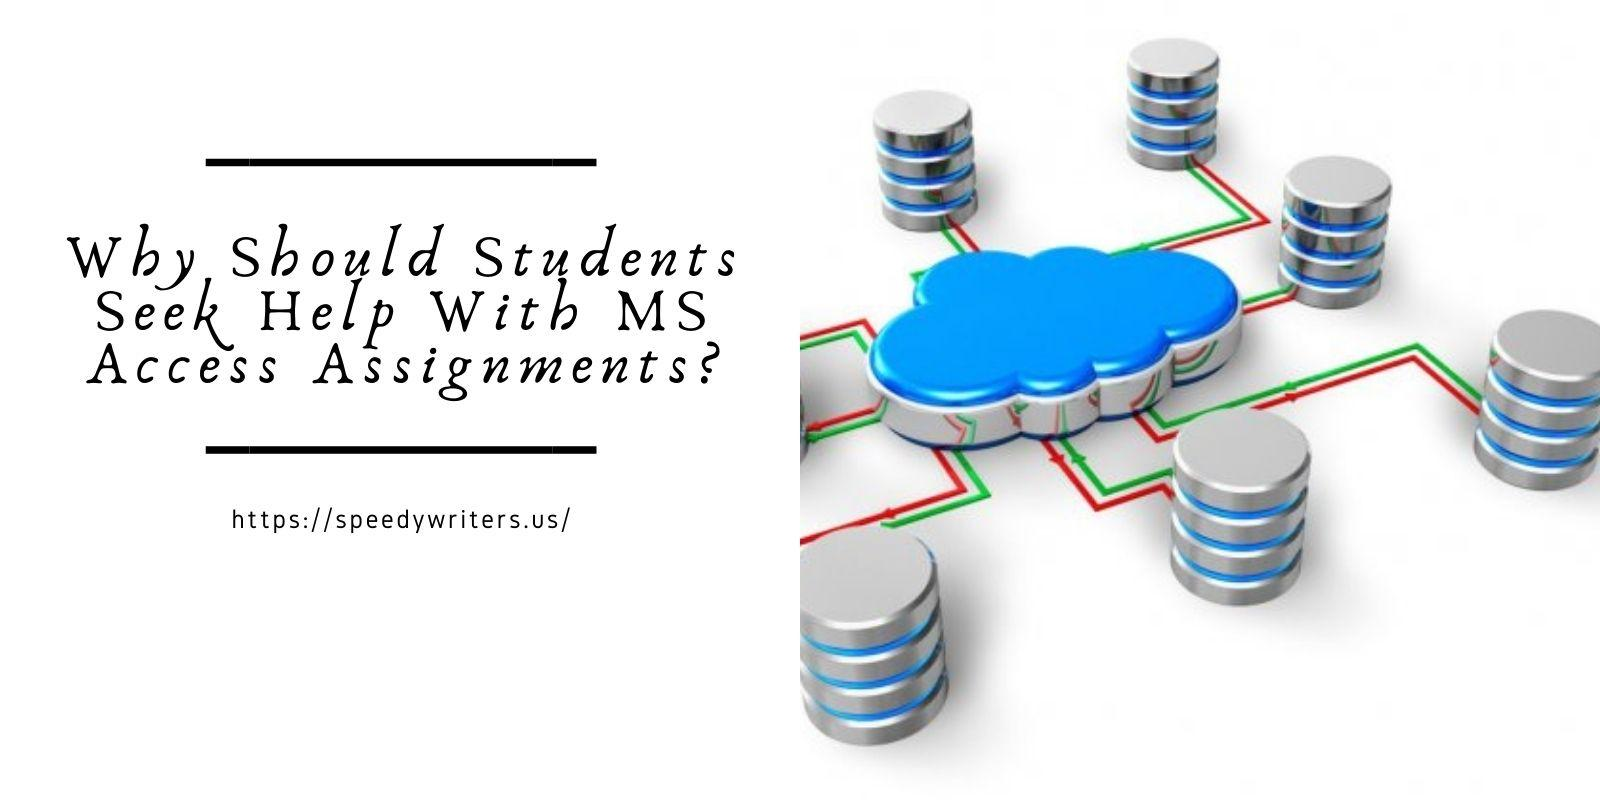 Why Should Students Seek Help With MS Access Assignments?